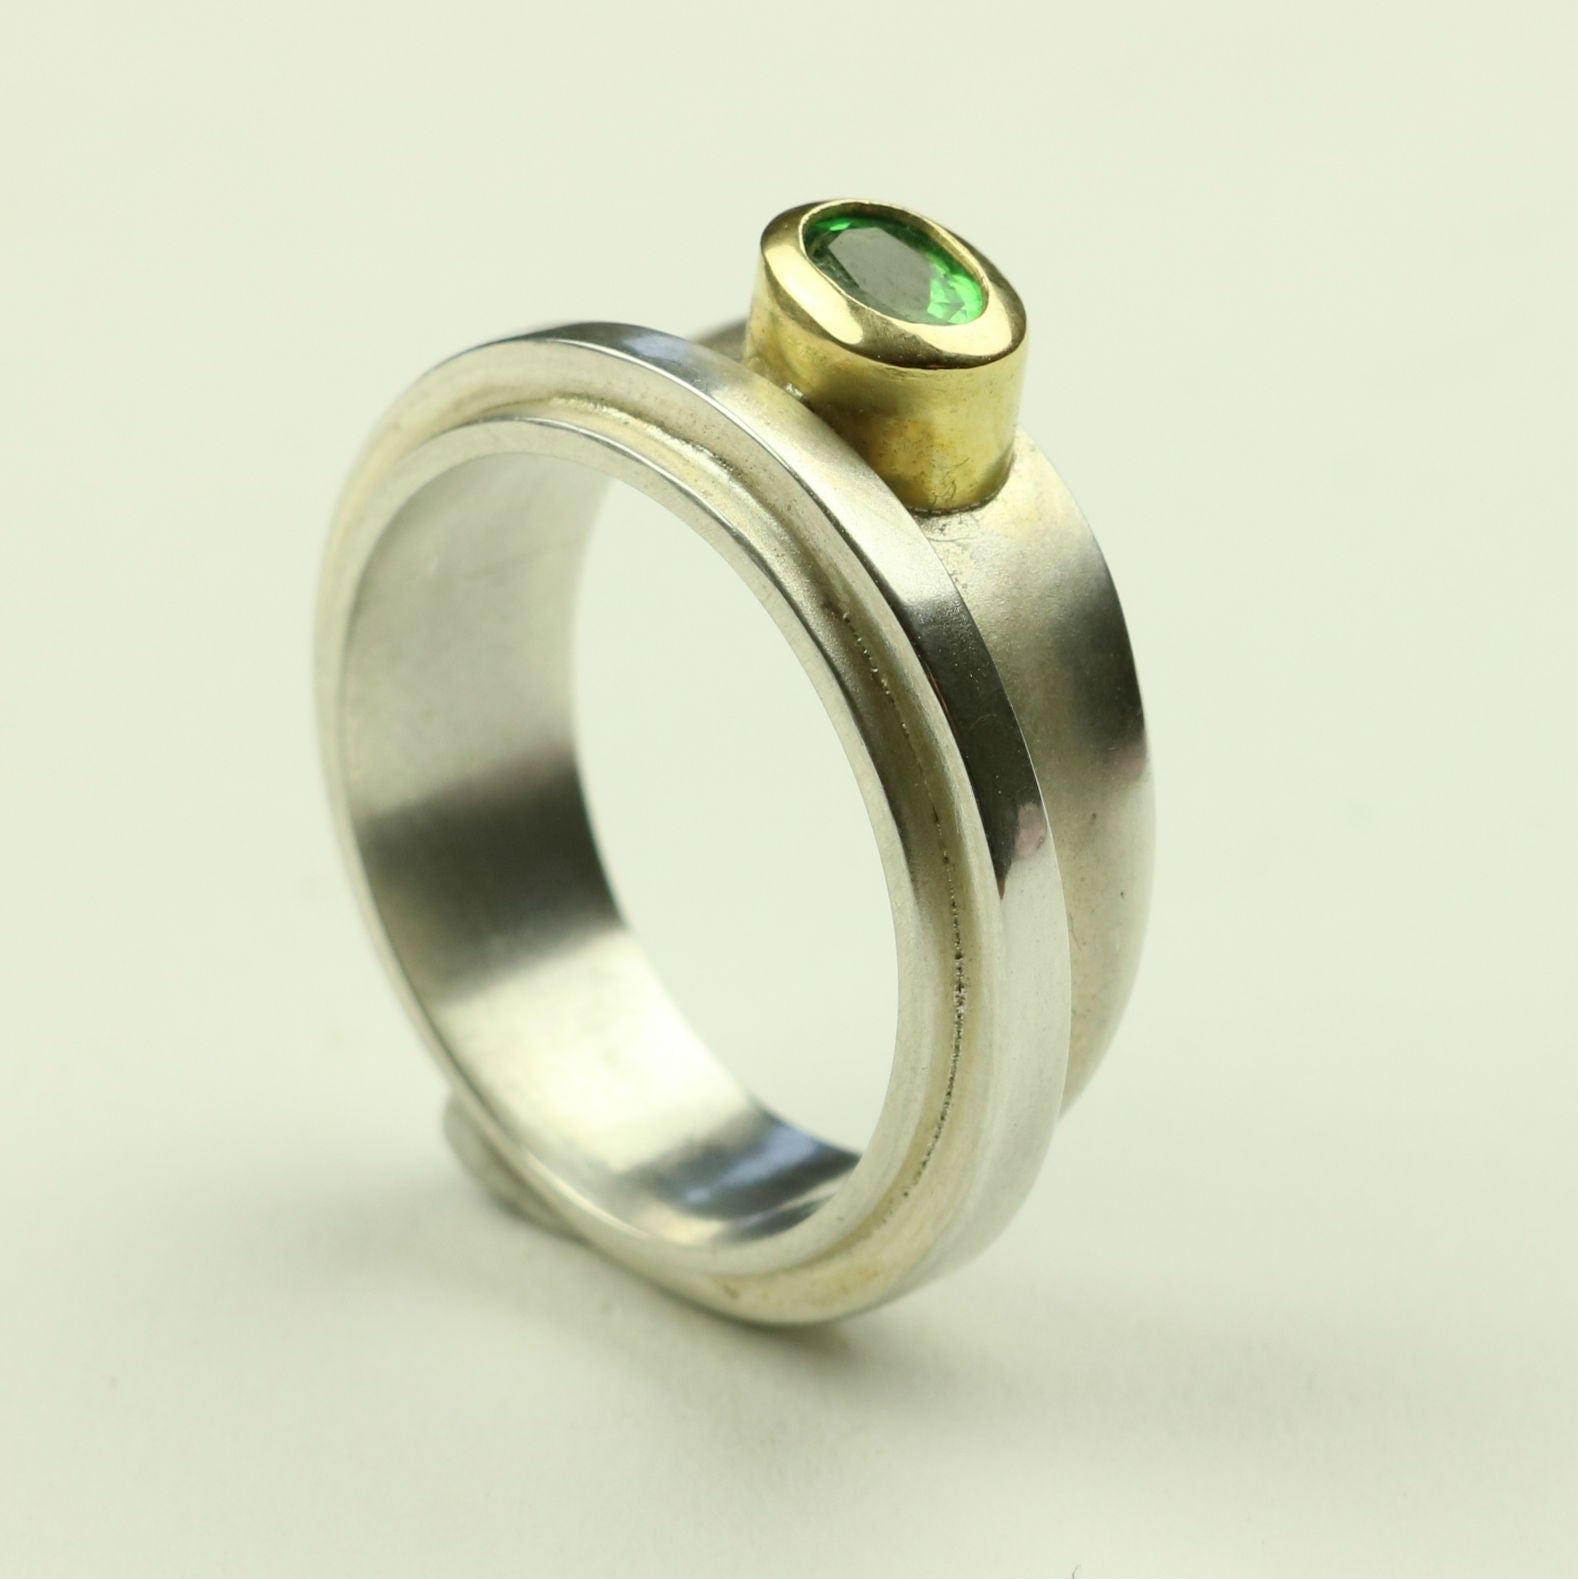 Taper Ring in Silver and Gold with Tsavorite